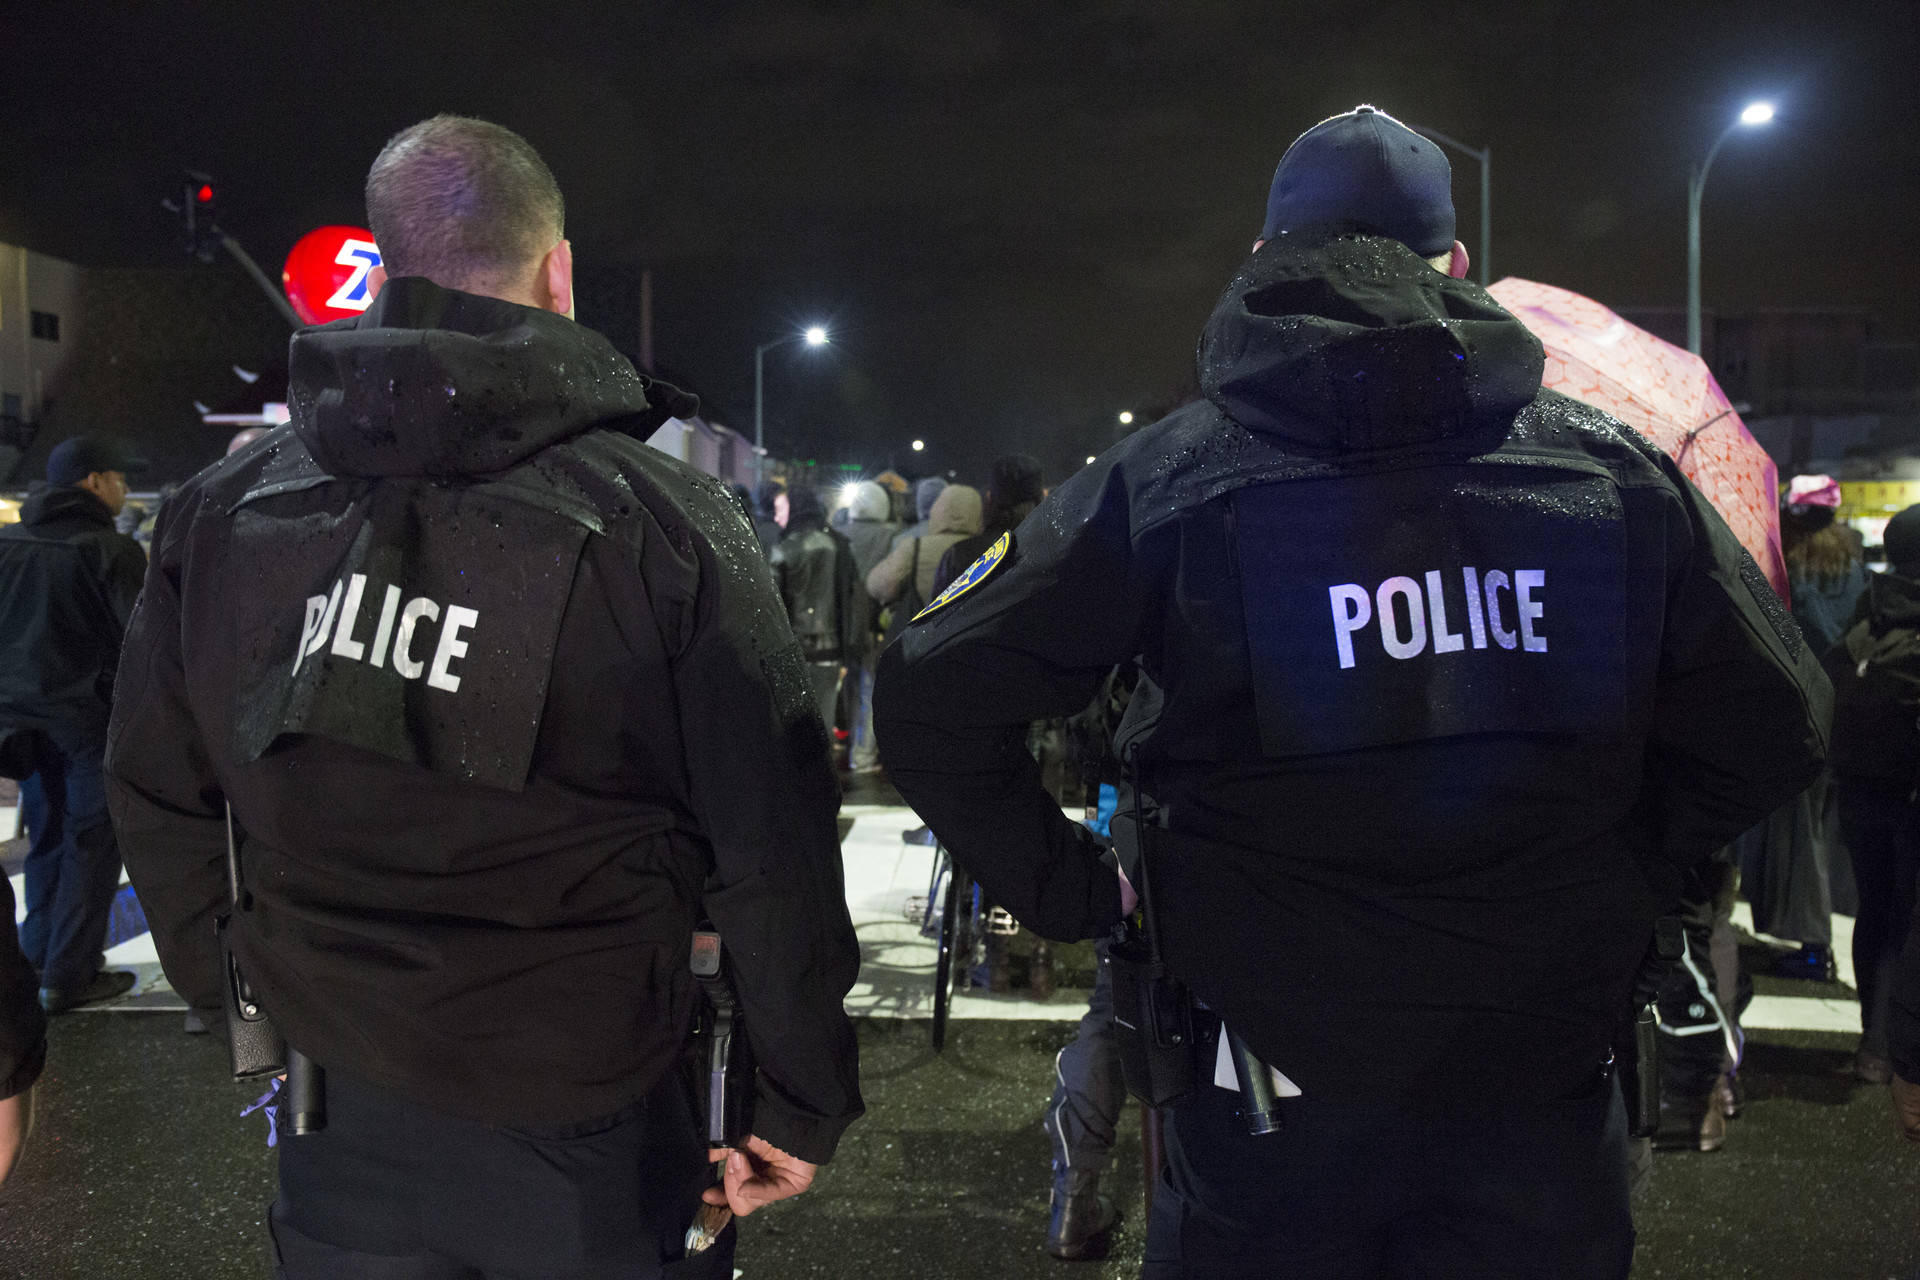 Senate Bill 1421 removes exemptions blocking public access to police misconduct records stretching back decades. Erasmo Martinez/KQED